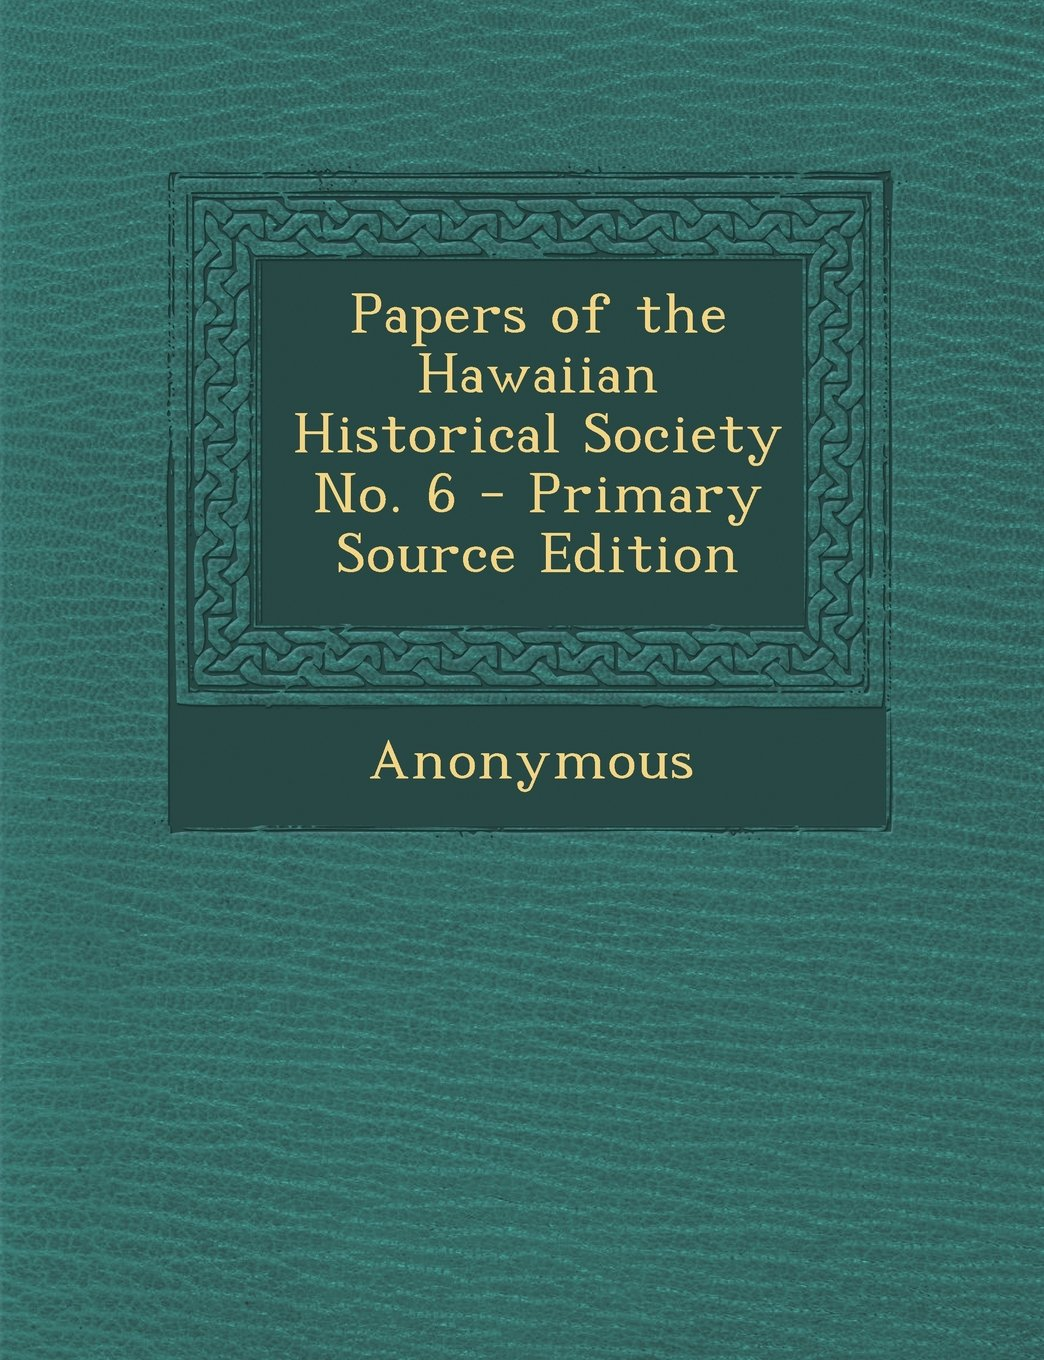 Download Papers of the Hawaiian Historical Society No. 6 - Primary Source Edition ebook